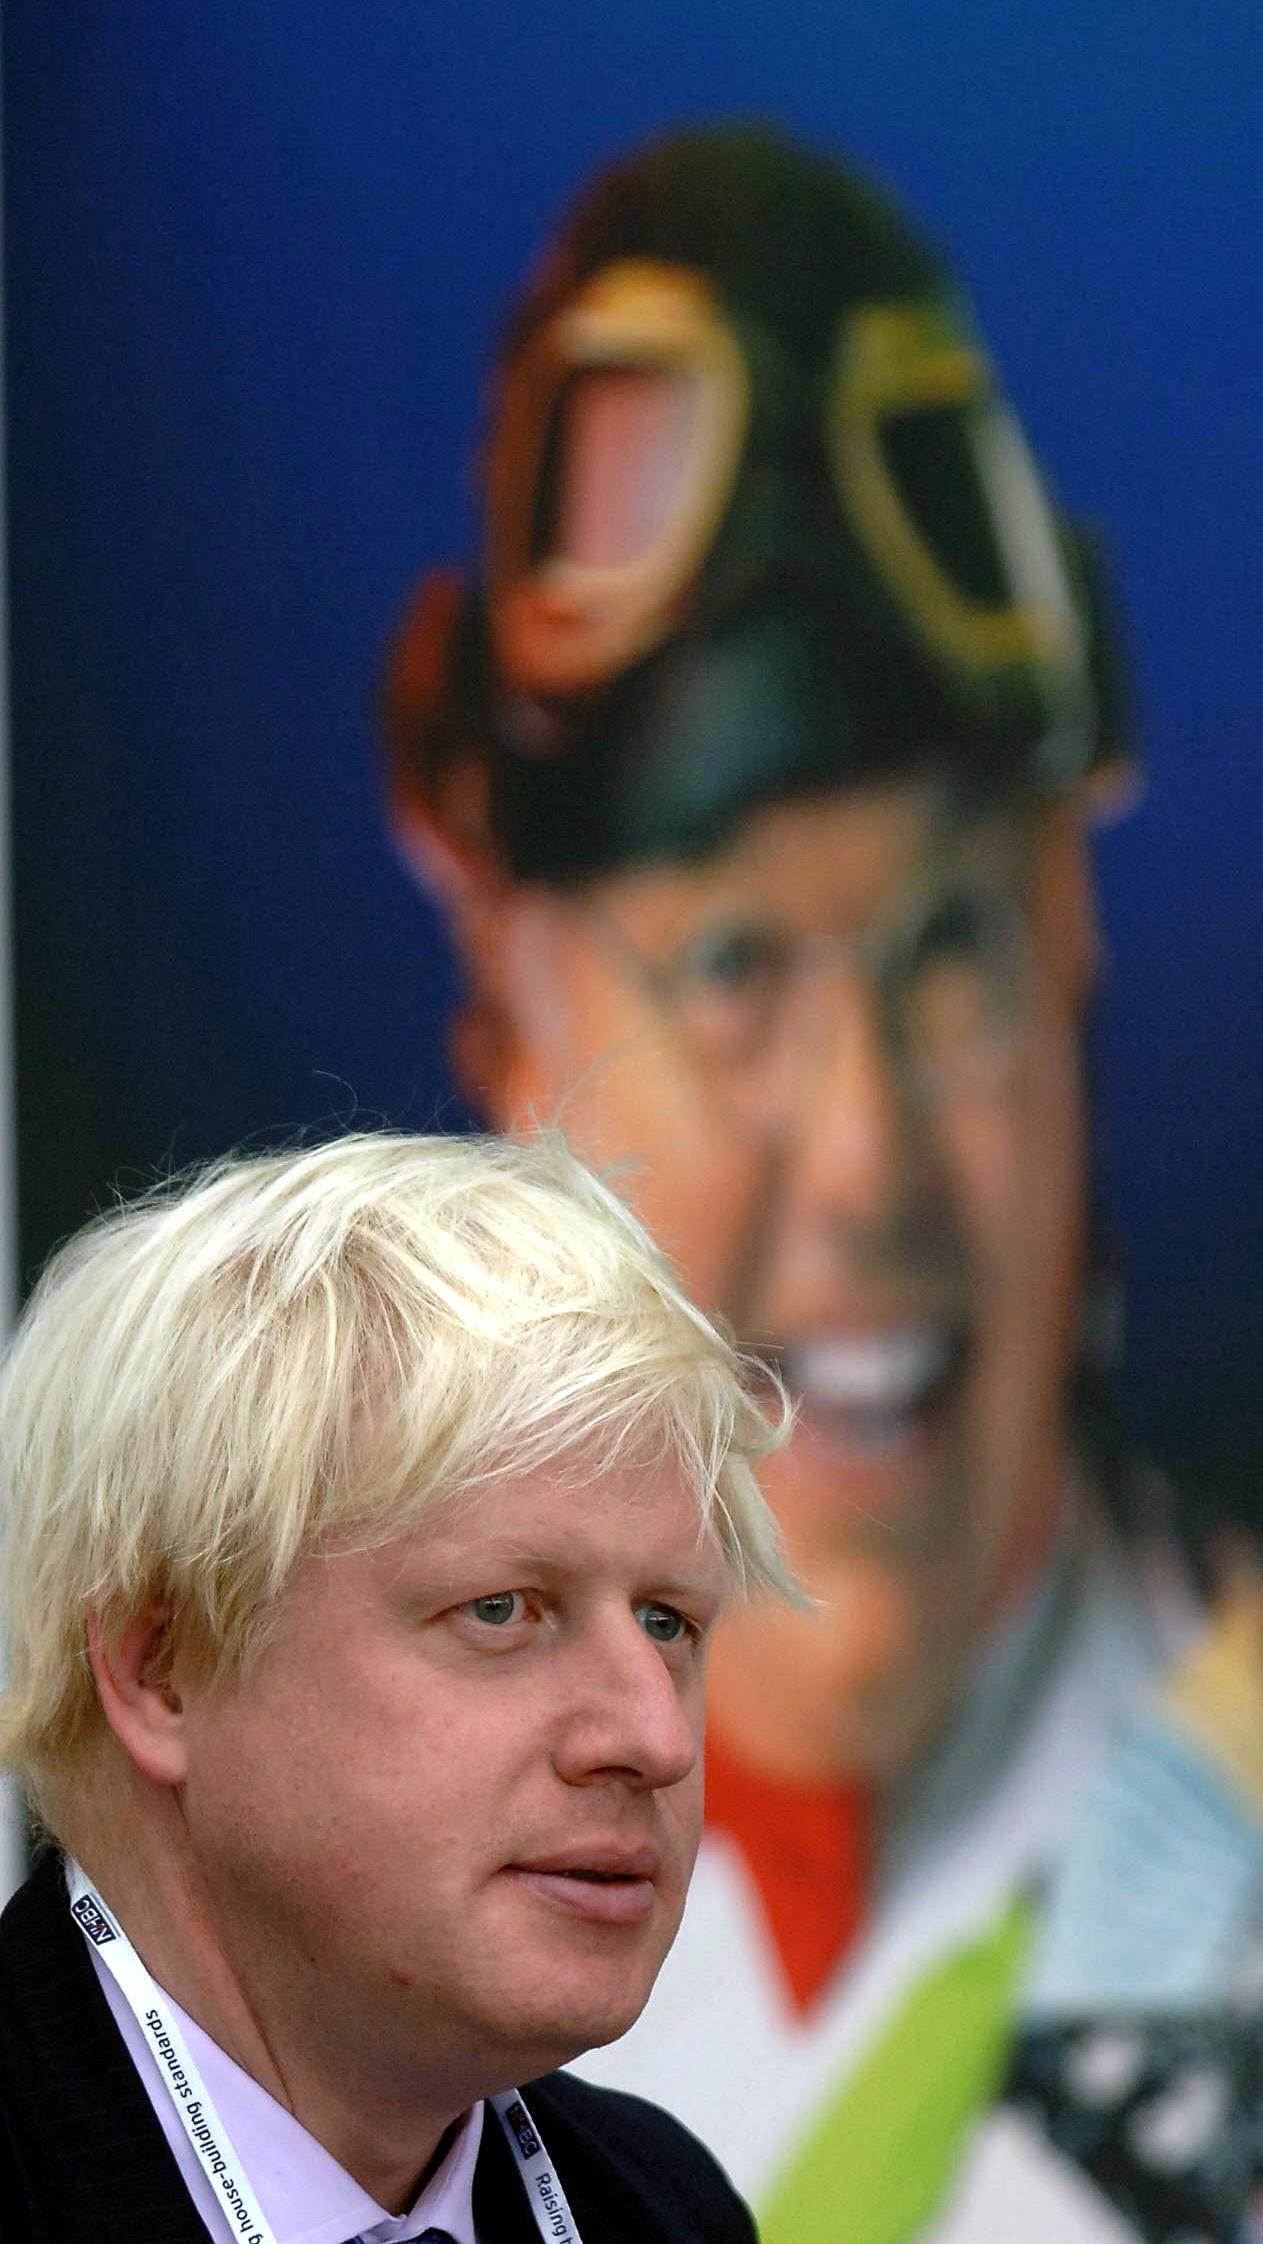 """Boris Johnson the Conservative MP for Henley in front of a poster for Pier Comedian Roy Chubby Brown in Blackpool, Monday 3 October 2005 on the first day of the Conservative Conference. Colourful Tory MP Boris Johnson today said he found the idea that Gordon Brown could defeat any leader of the Conservative Party in a General Election """"absolutely unbelievable"""". The member for Henley and Spectator editor, who is backing David Cameron's leadership bid, said that he was not in favour of would-be leaders trying to mimic Tony Blair but called for a new approach to Conservatism. Speaking at a conference fringe meeting, he predicted success for the Tories next time the country goes to polls. He said: """"I think the Tories are going to win the next election. See PA Story TORY Boris. PRESS ASSOCIATION Photo. Photo credit should read: PA."""